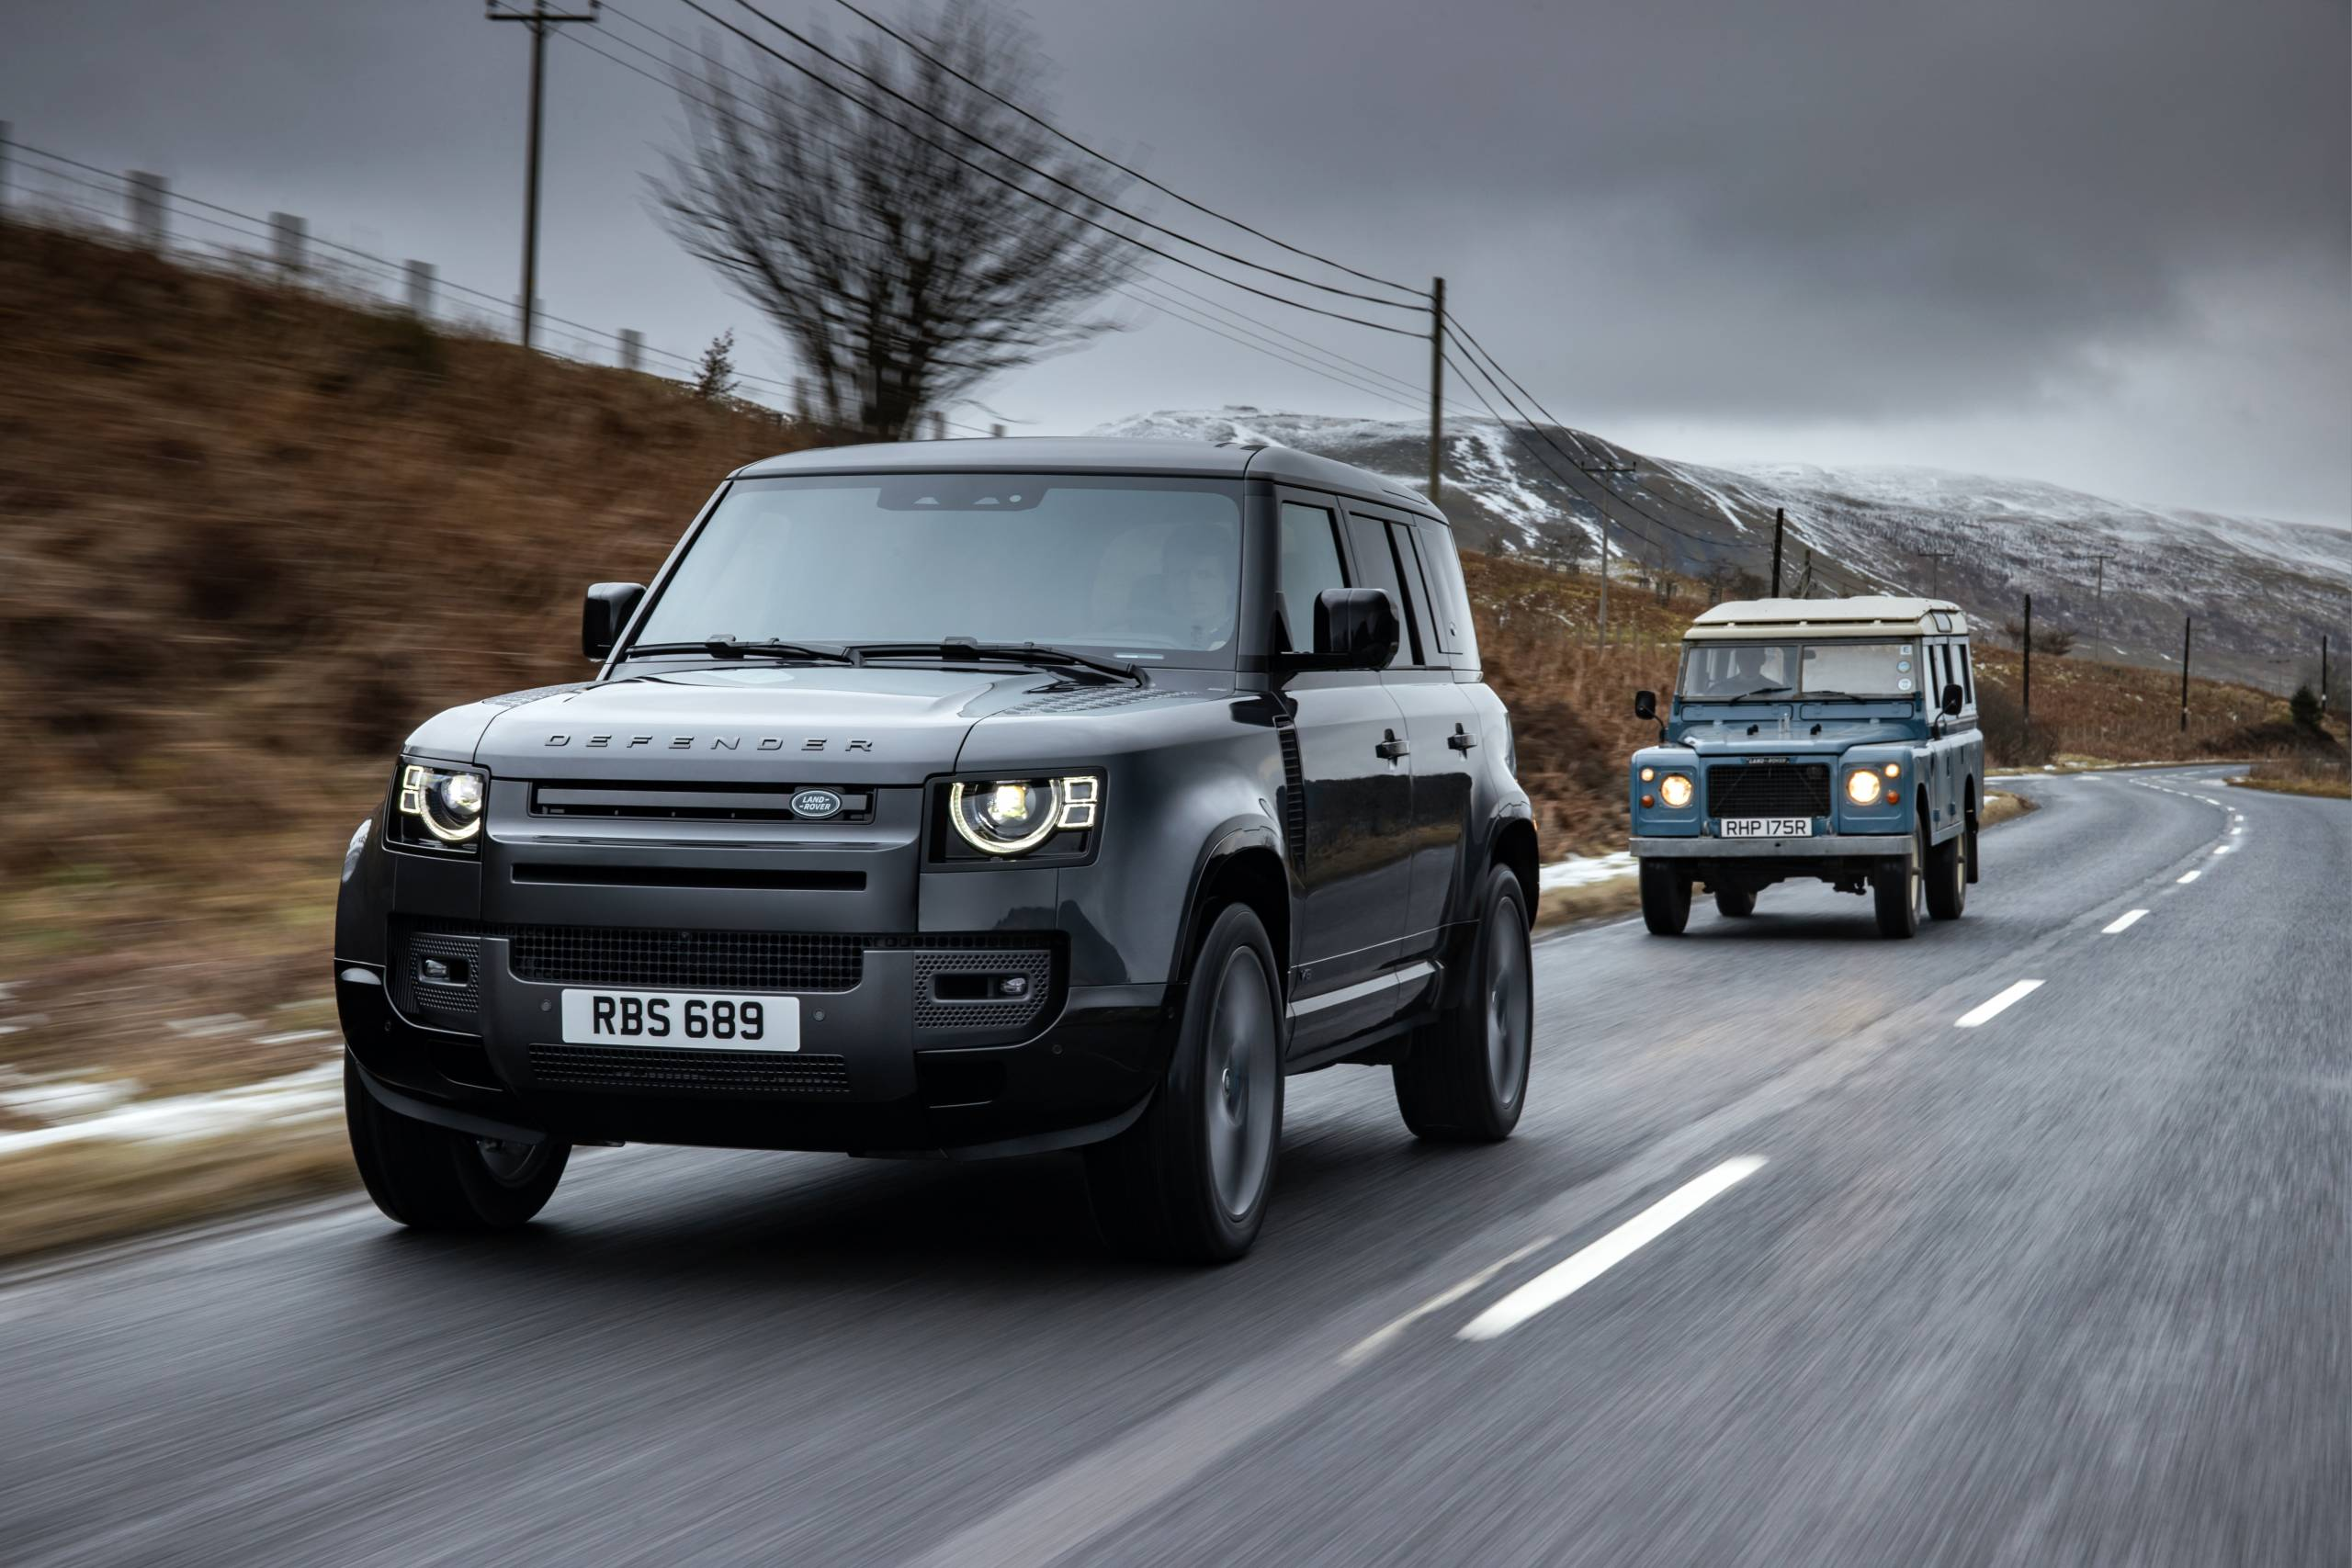 2022 Land Rover Defender 110 V8 on road with old Series Rover following